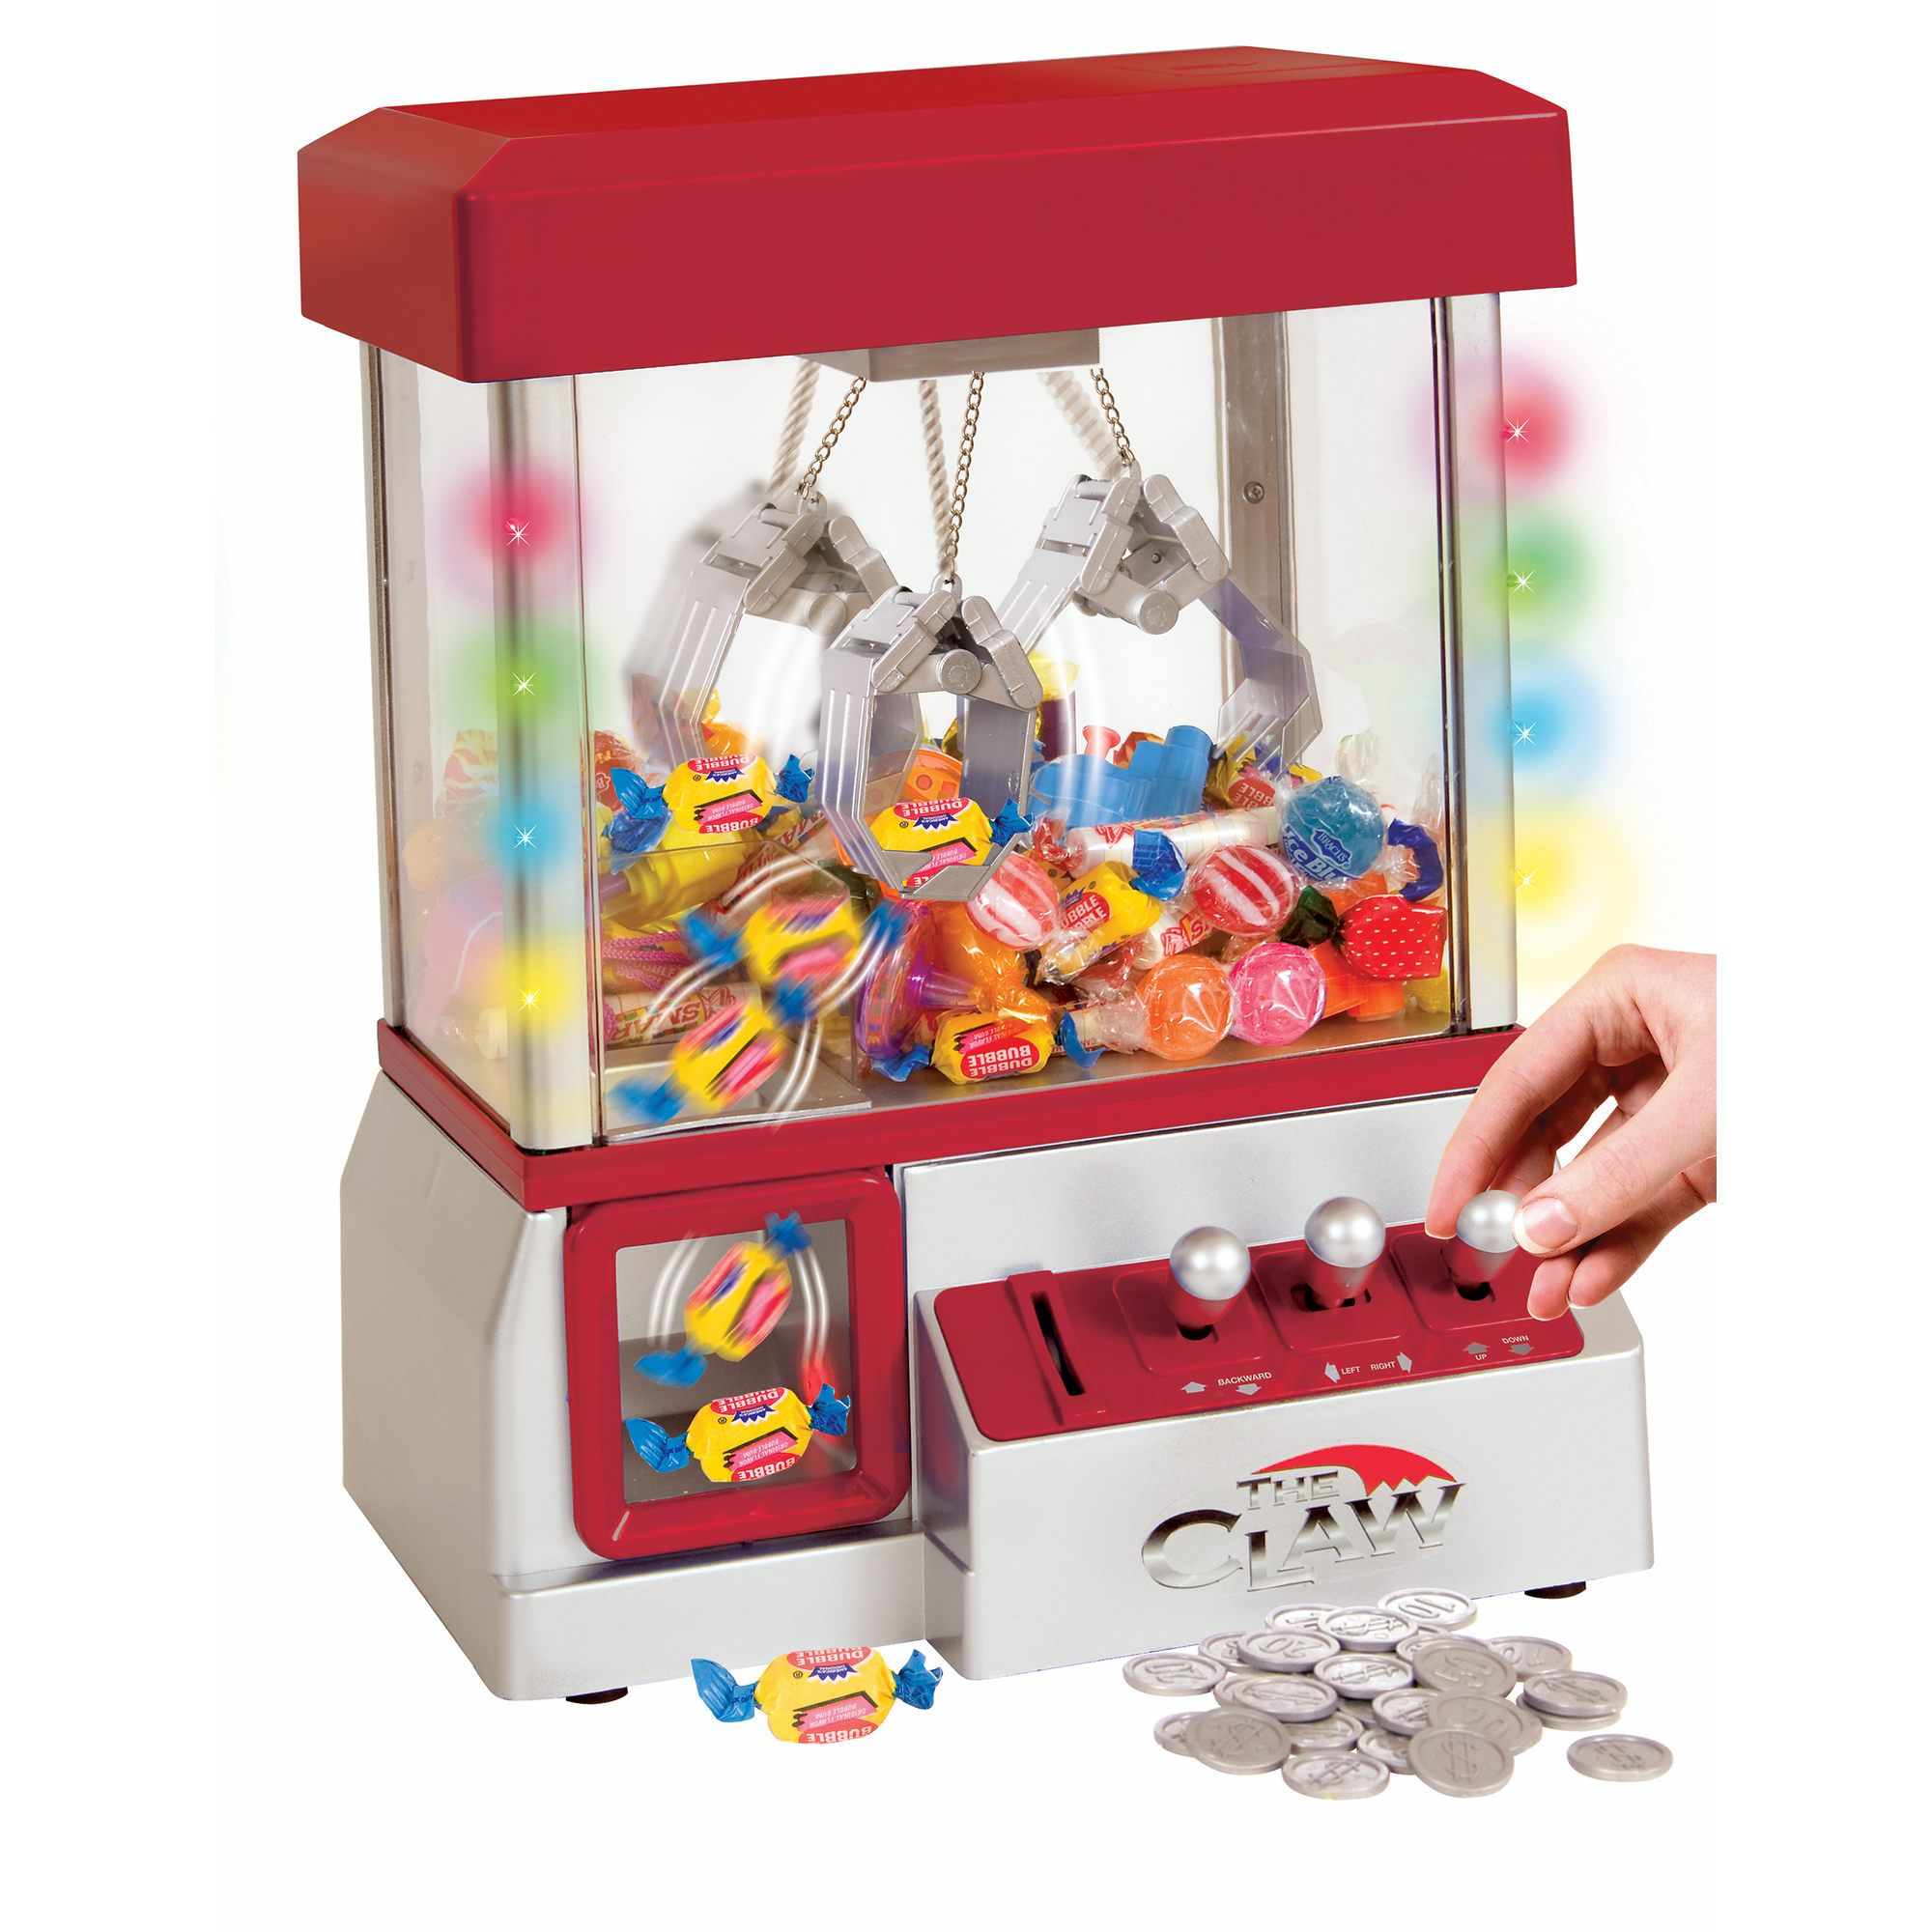 Etna Products The Claw Electronic Arcade Game with LED